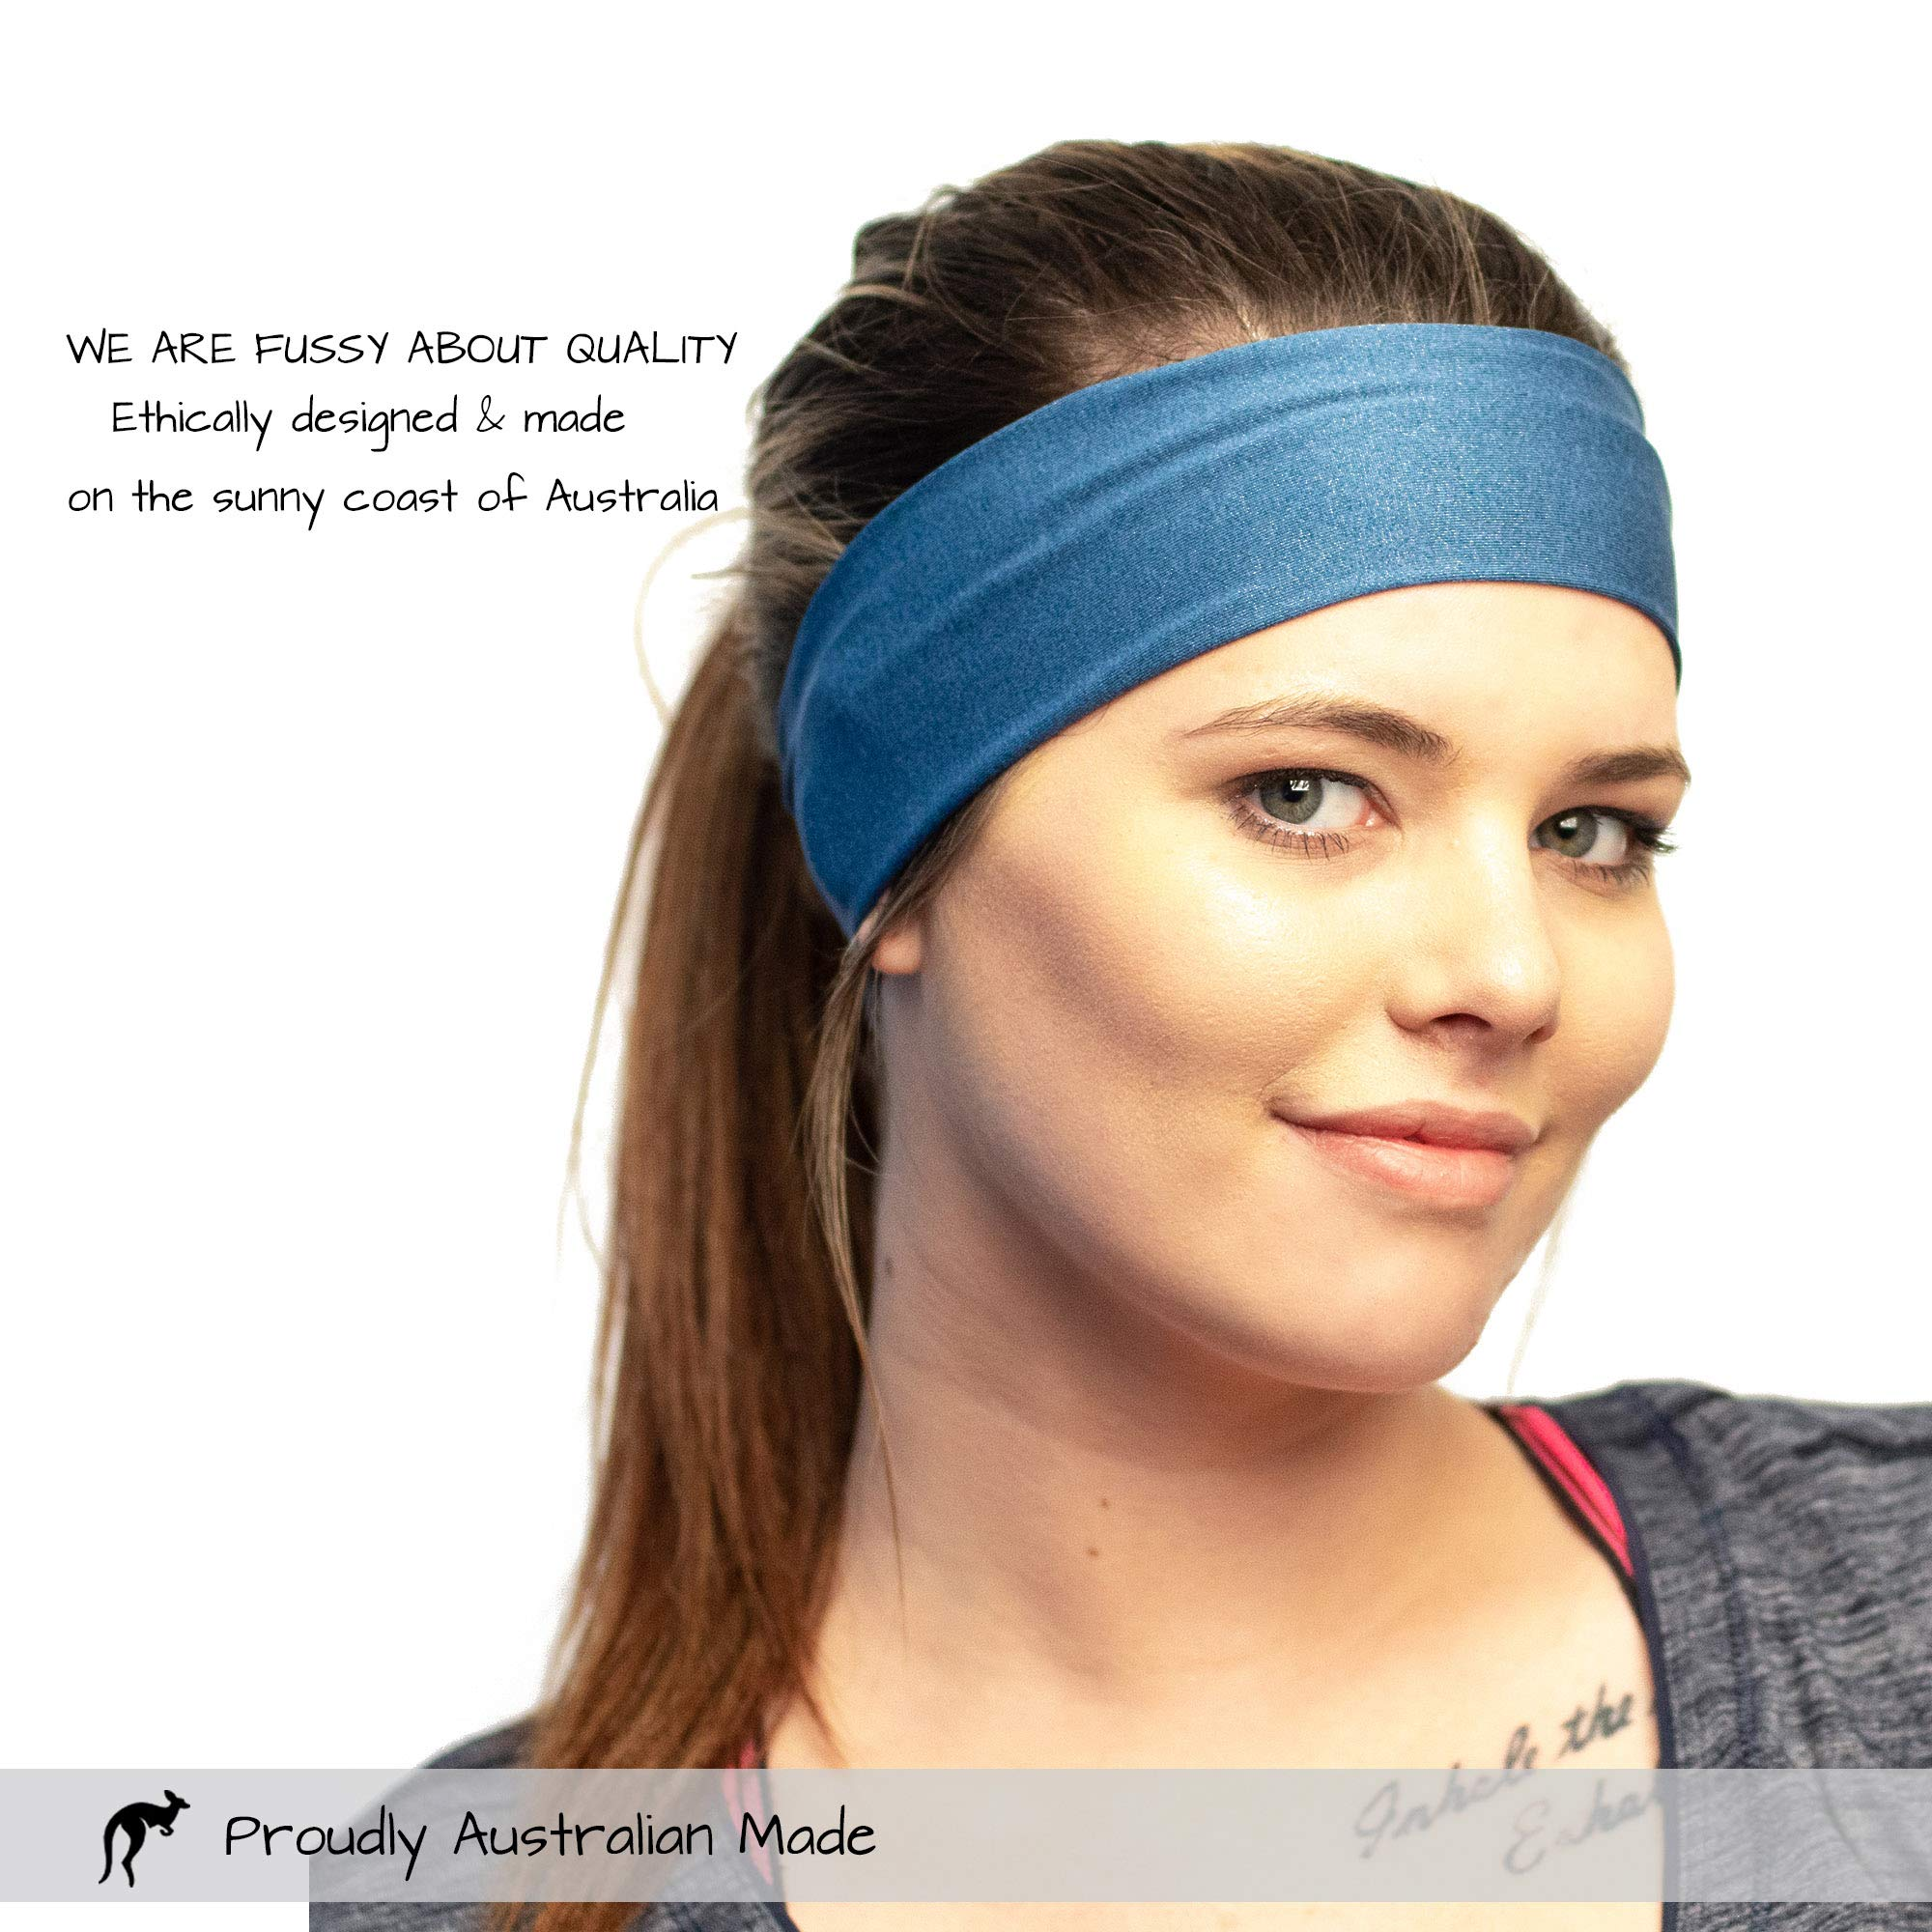 Red Dust Active Workout Headband - Ideal for Sports, Fitness, Running, The Gym & Yoga - Moisture Wicking - Non-Slip - Exercise Sweatband - Designed for Versatility & The Active Women by Red Dust Active (Image #8)